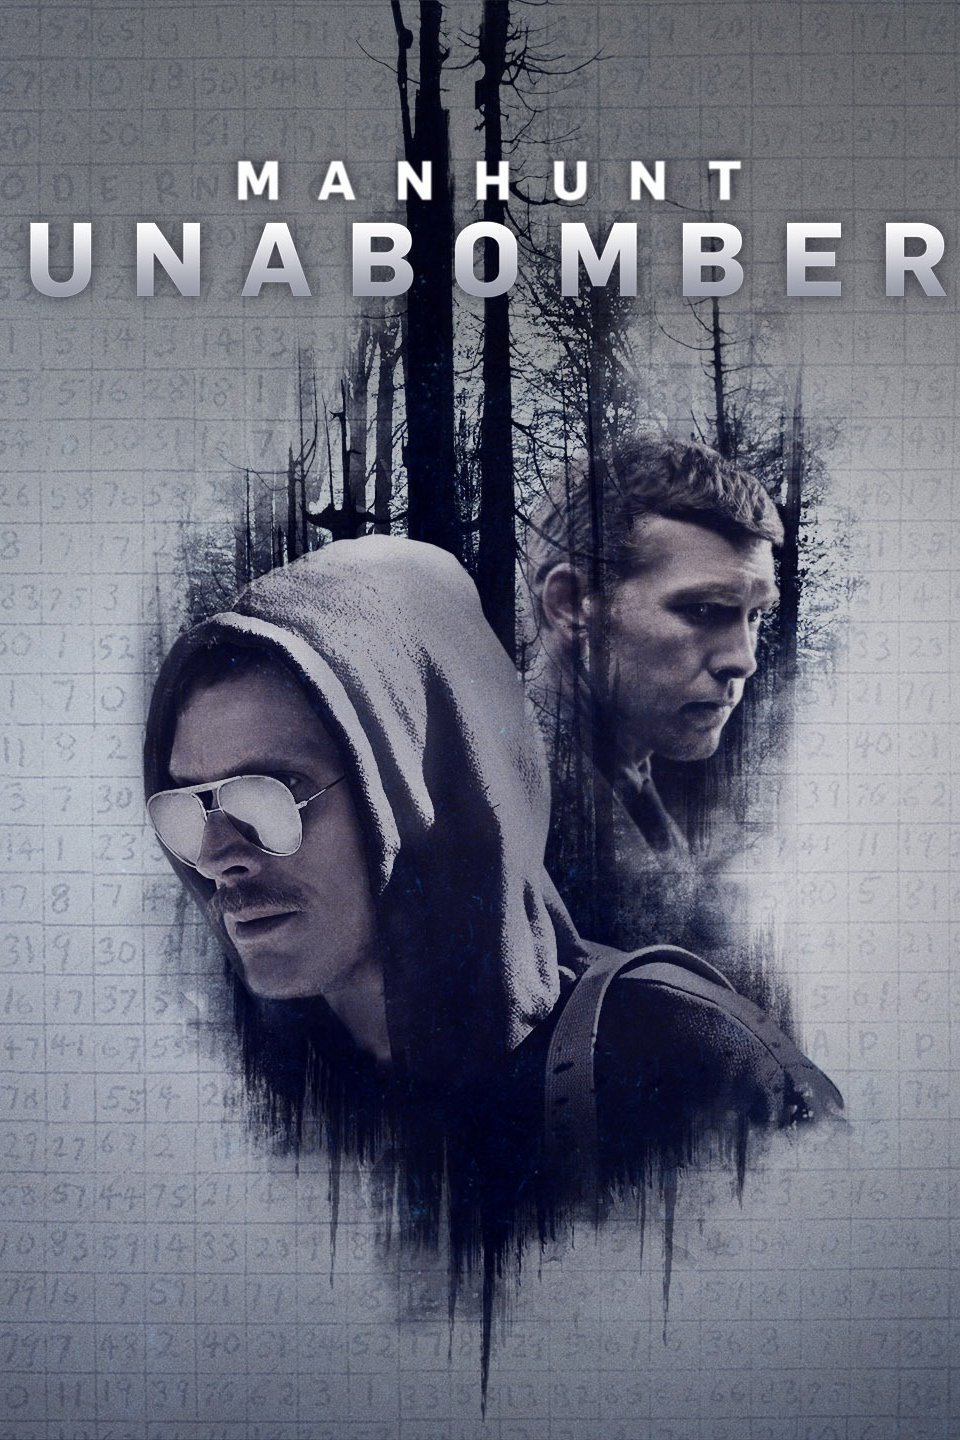 Manhunt Unabomber Season 1 Episode 4 HDTV Micromkv